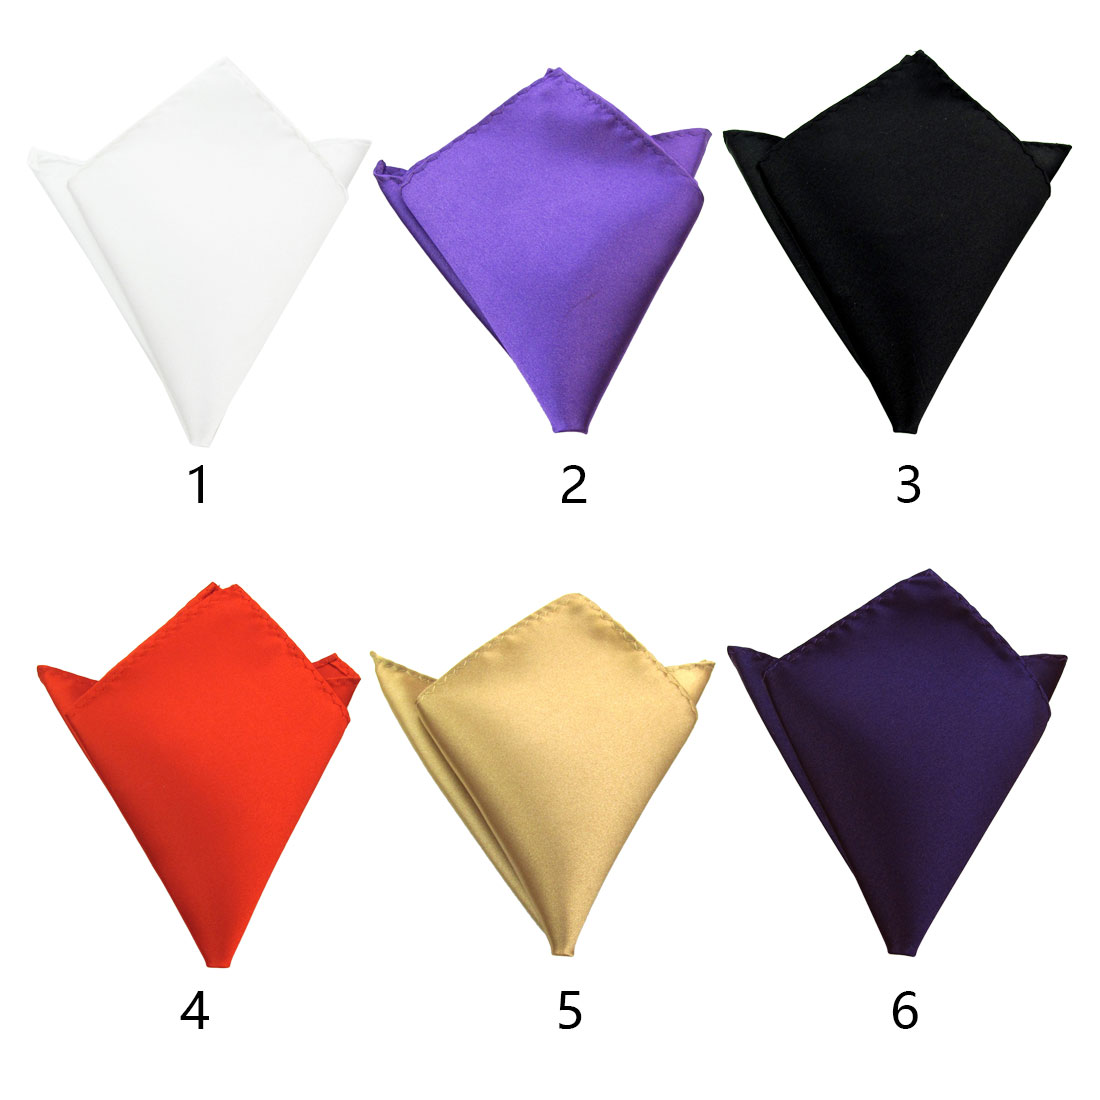 Gentle Men's Retro Style Pocket Square Wedding Men's Handkerchief Hanky Wedding Party